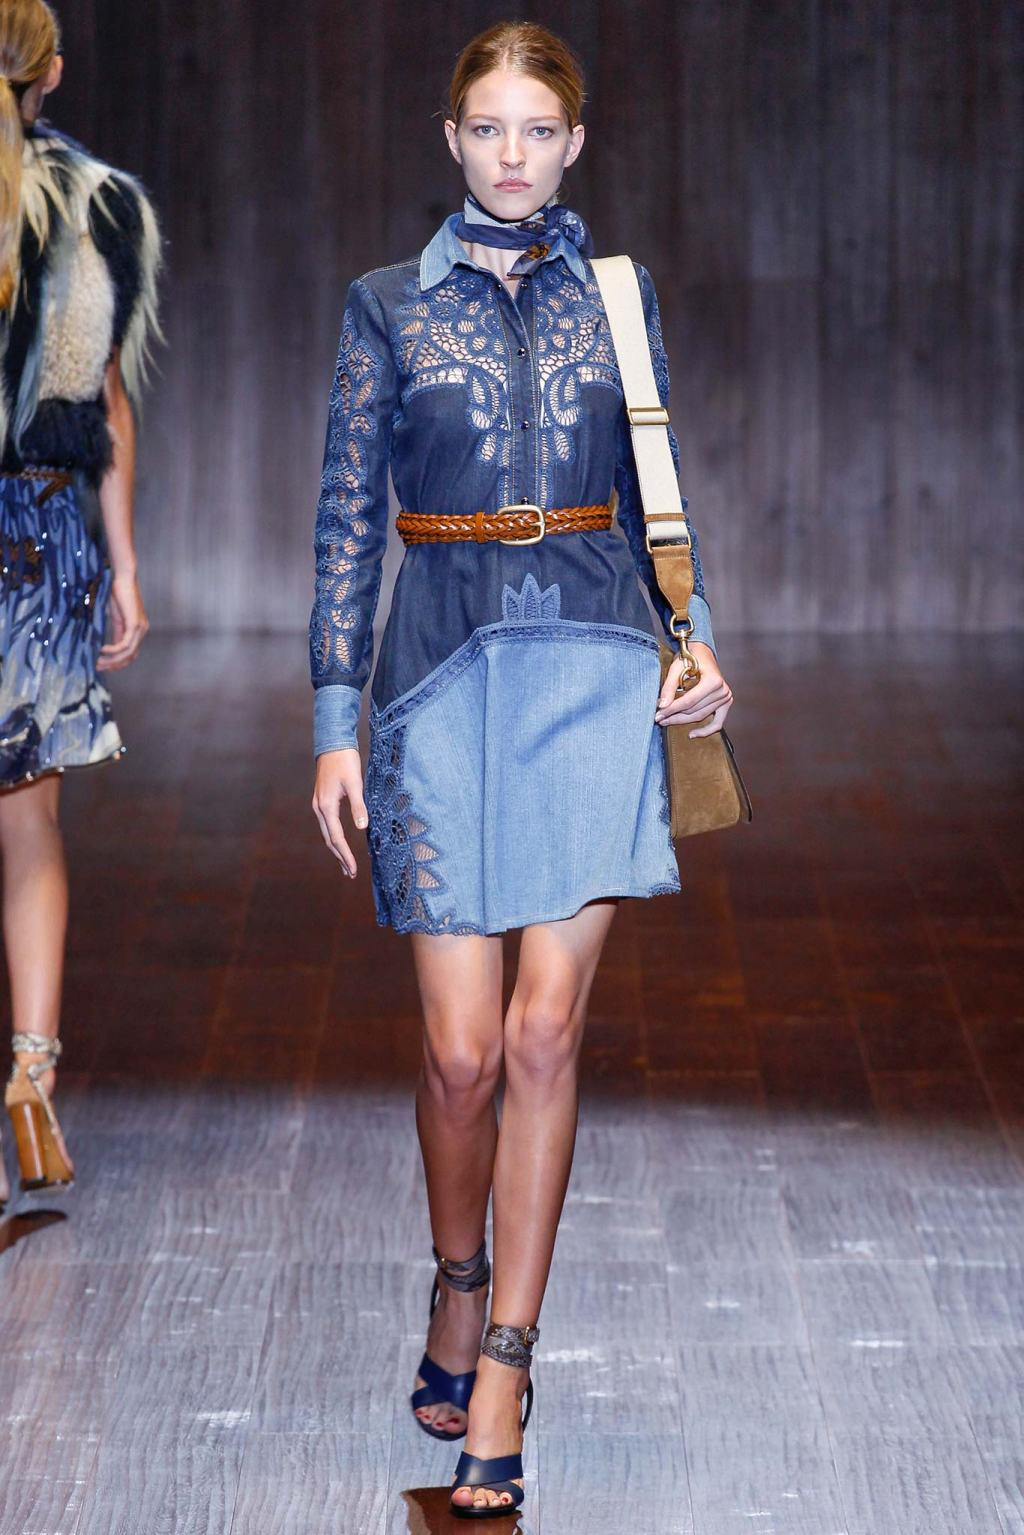 GUCCI DENIM DRESS MODEL SPRING SUMMER 2015 FASHION WEEK